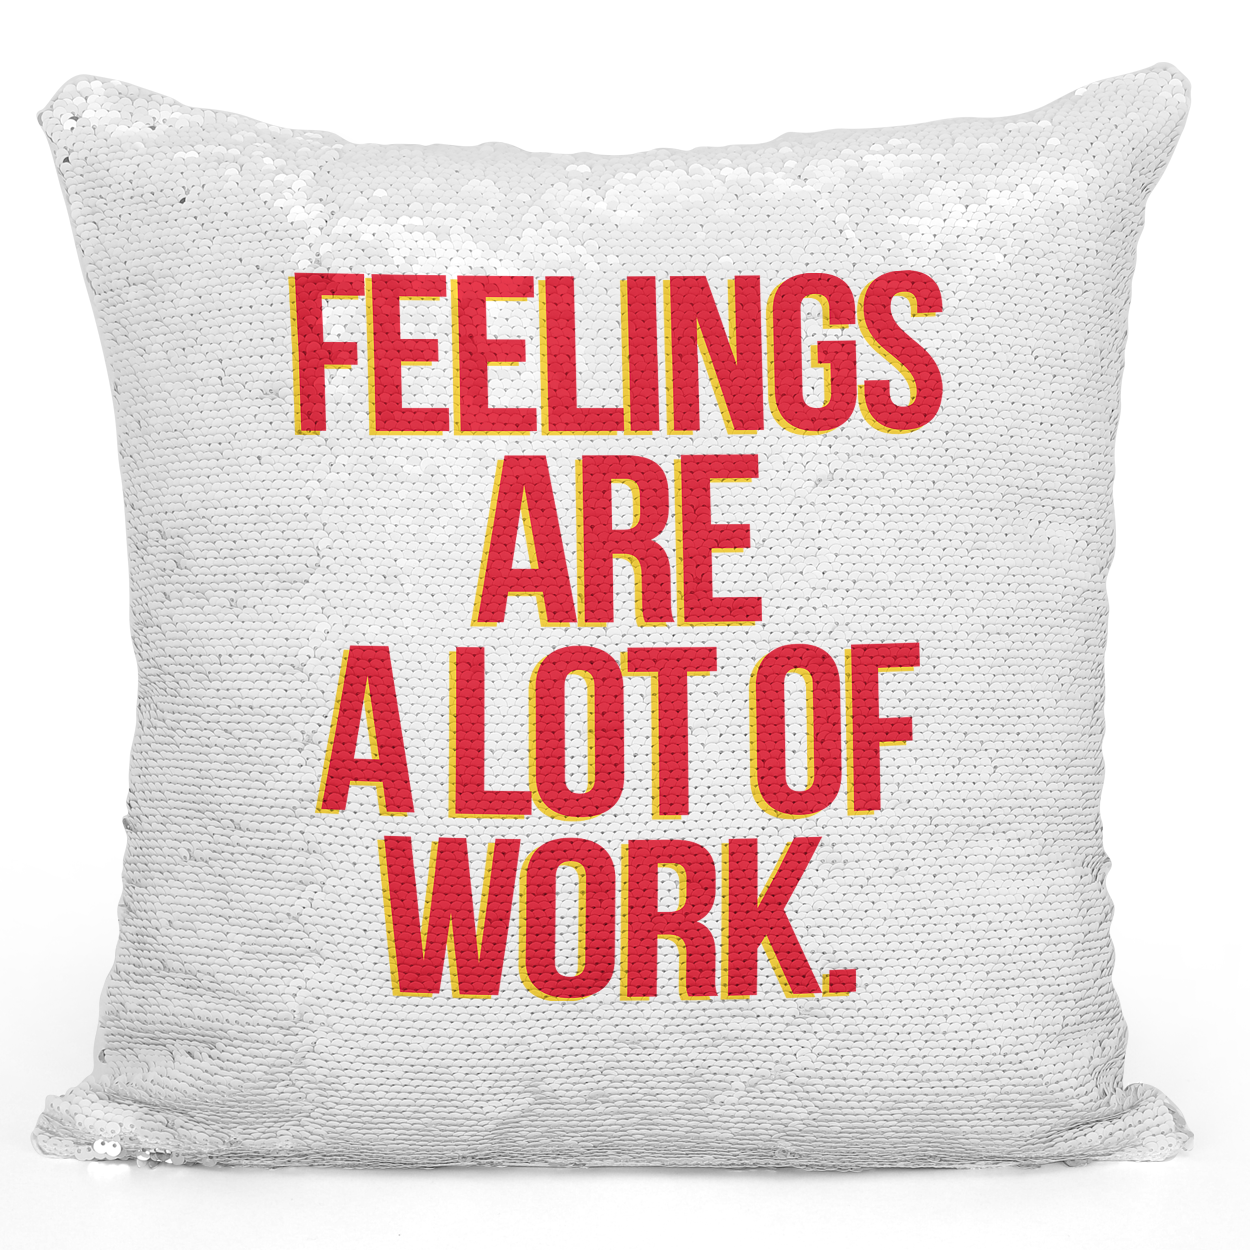 16x16 inch Sequin Throw Pillow Magic Flip Pillow Feelings Are Alot Of Work Printed Pillow With Words Loud Universe